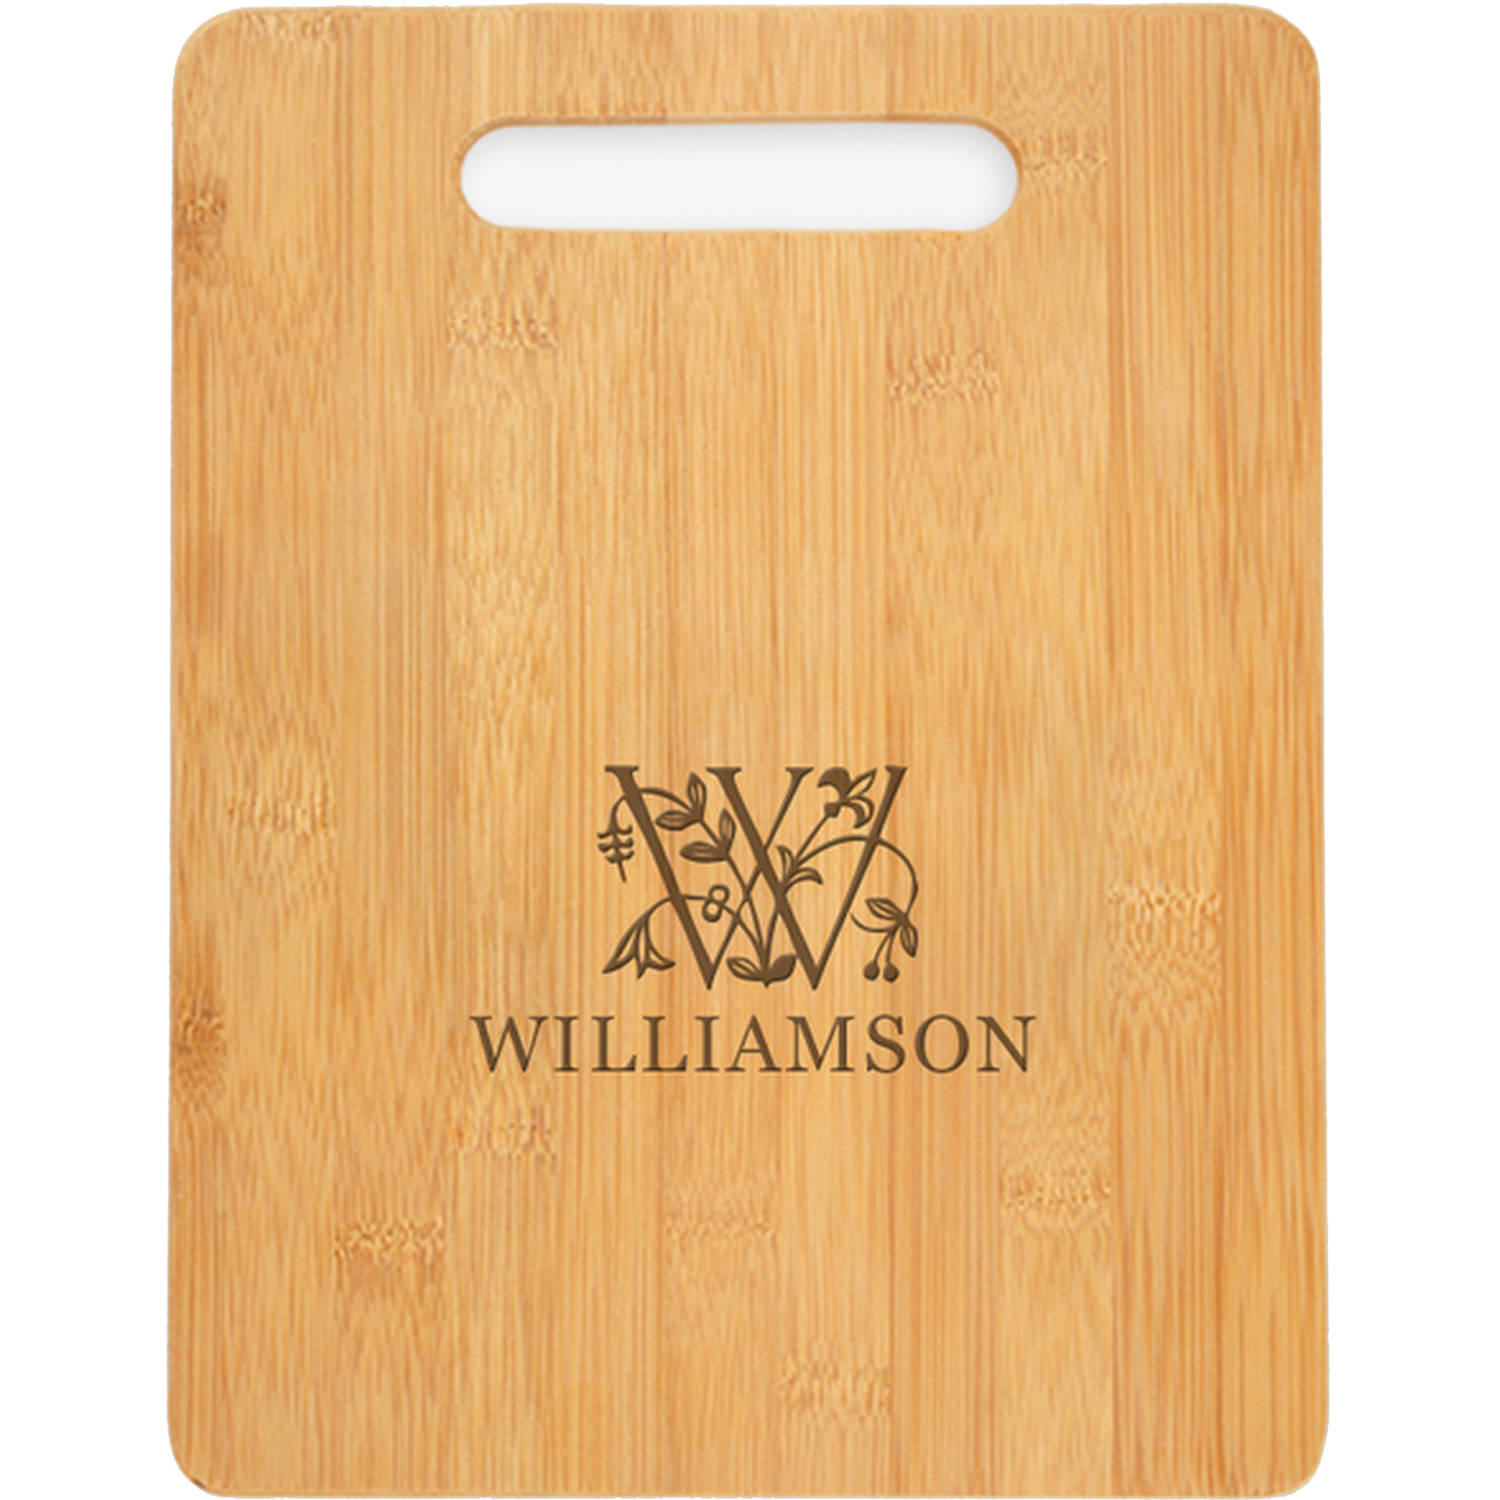 "Personalized Initial and Vine Cutting Board, Sizes 12.5"" x 11.5"" and 12.5"" x 13.75"""